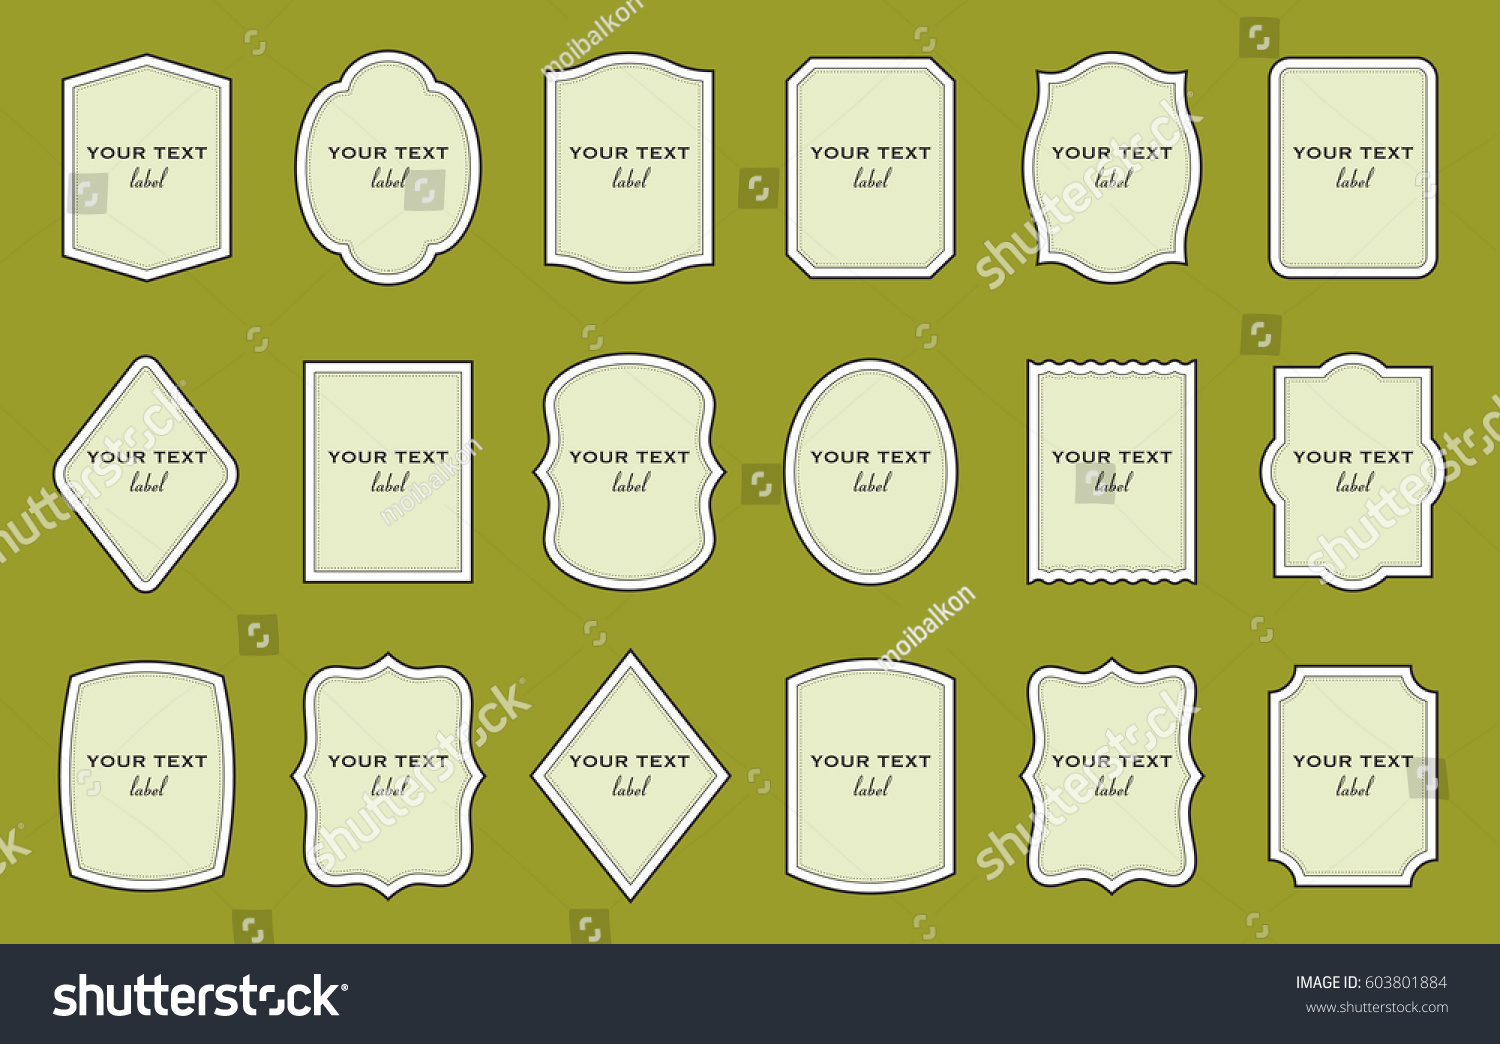 Set Product Label Templates Different Shapes Stock Vector 603801884 ...